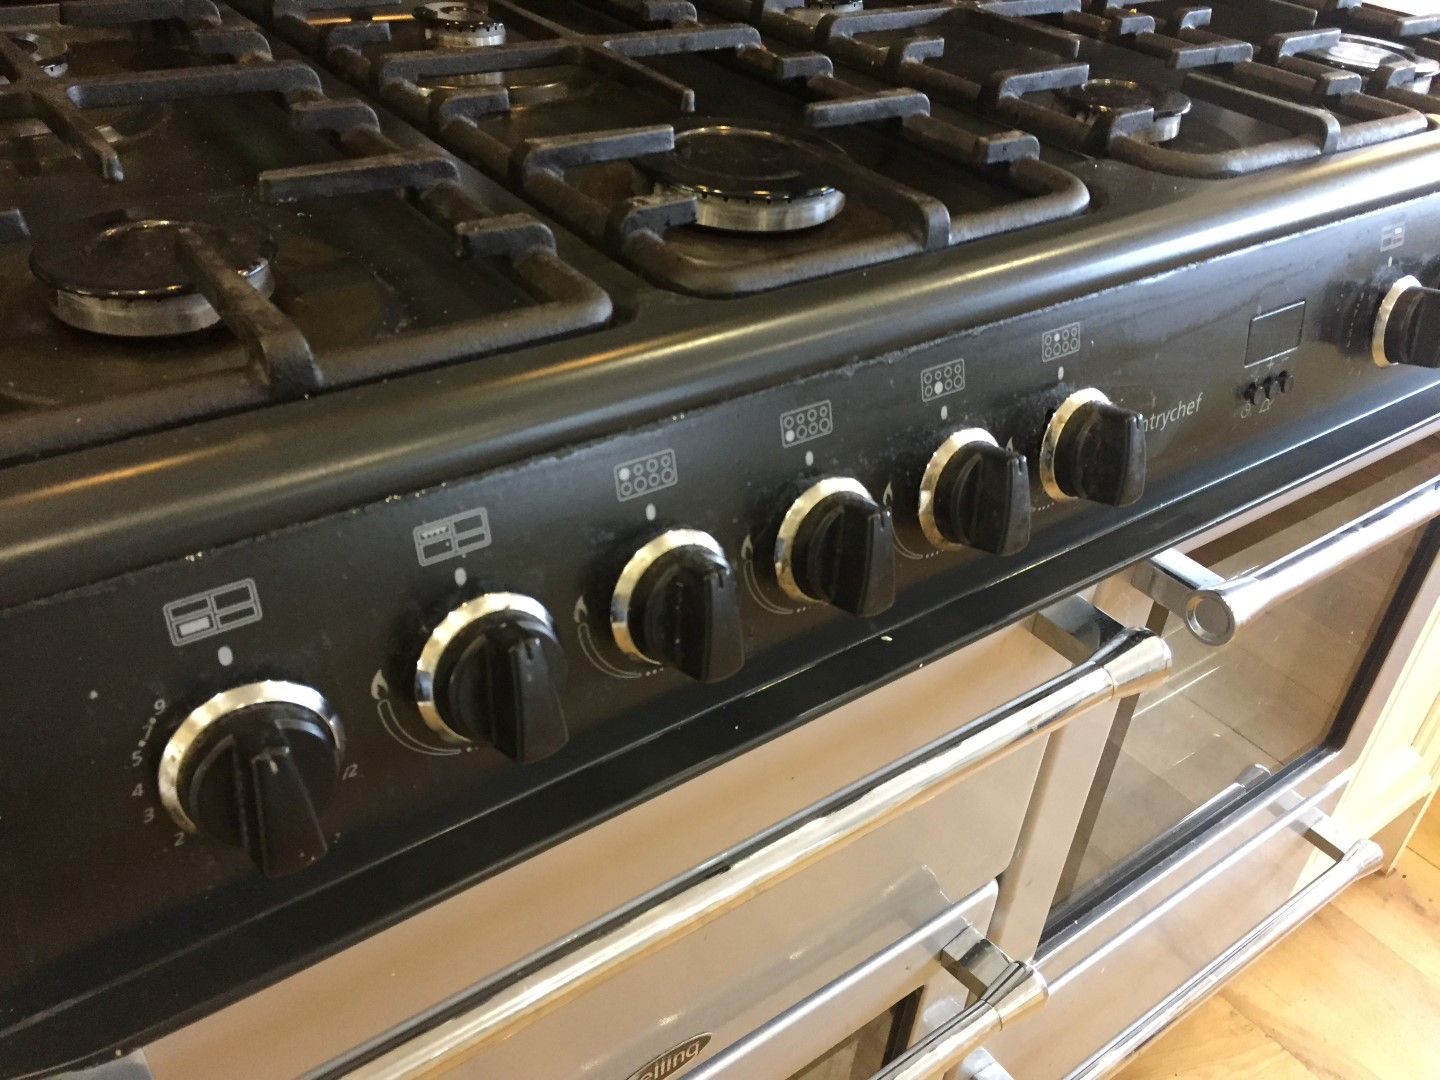 1 x belling 100g silver countrychef 8 burner 2 oven range